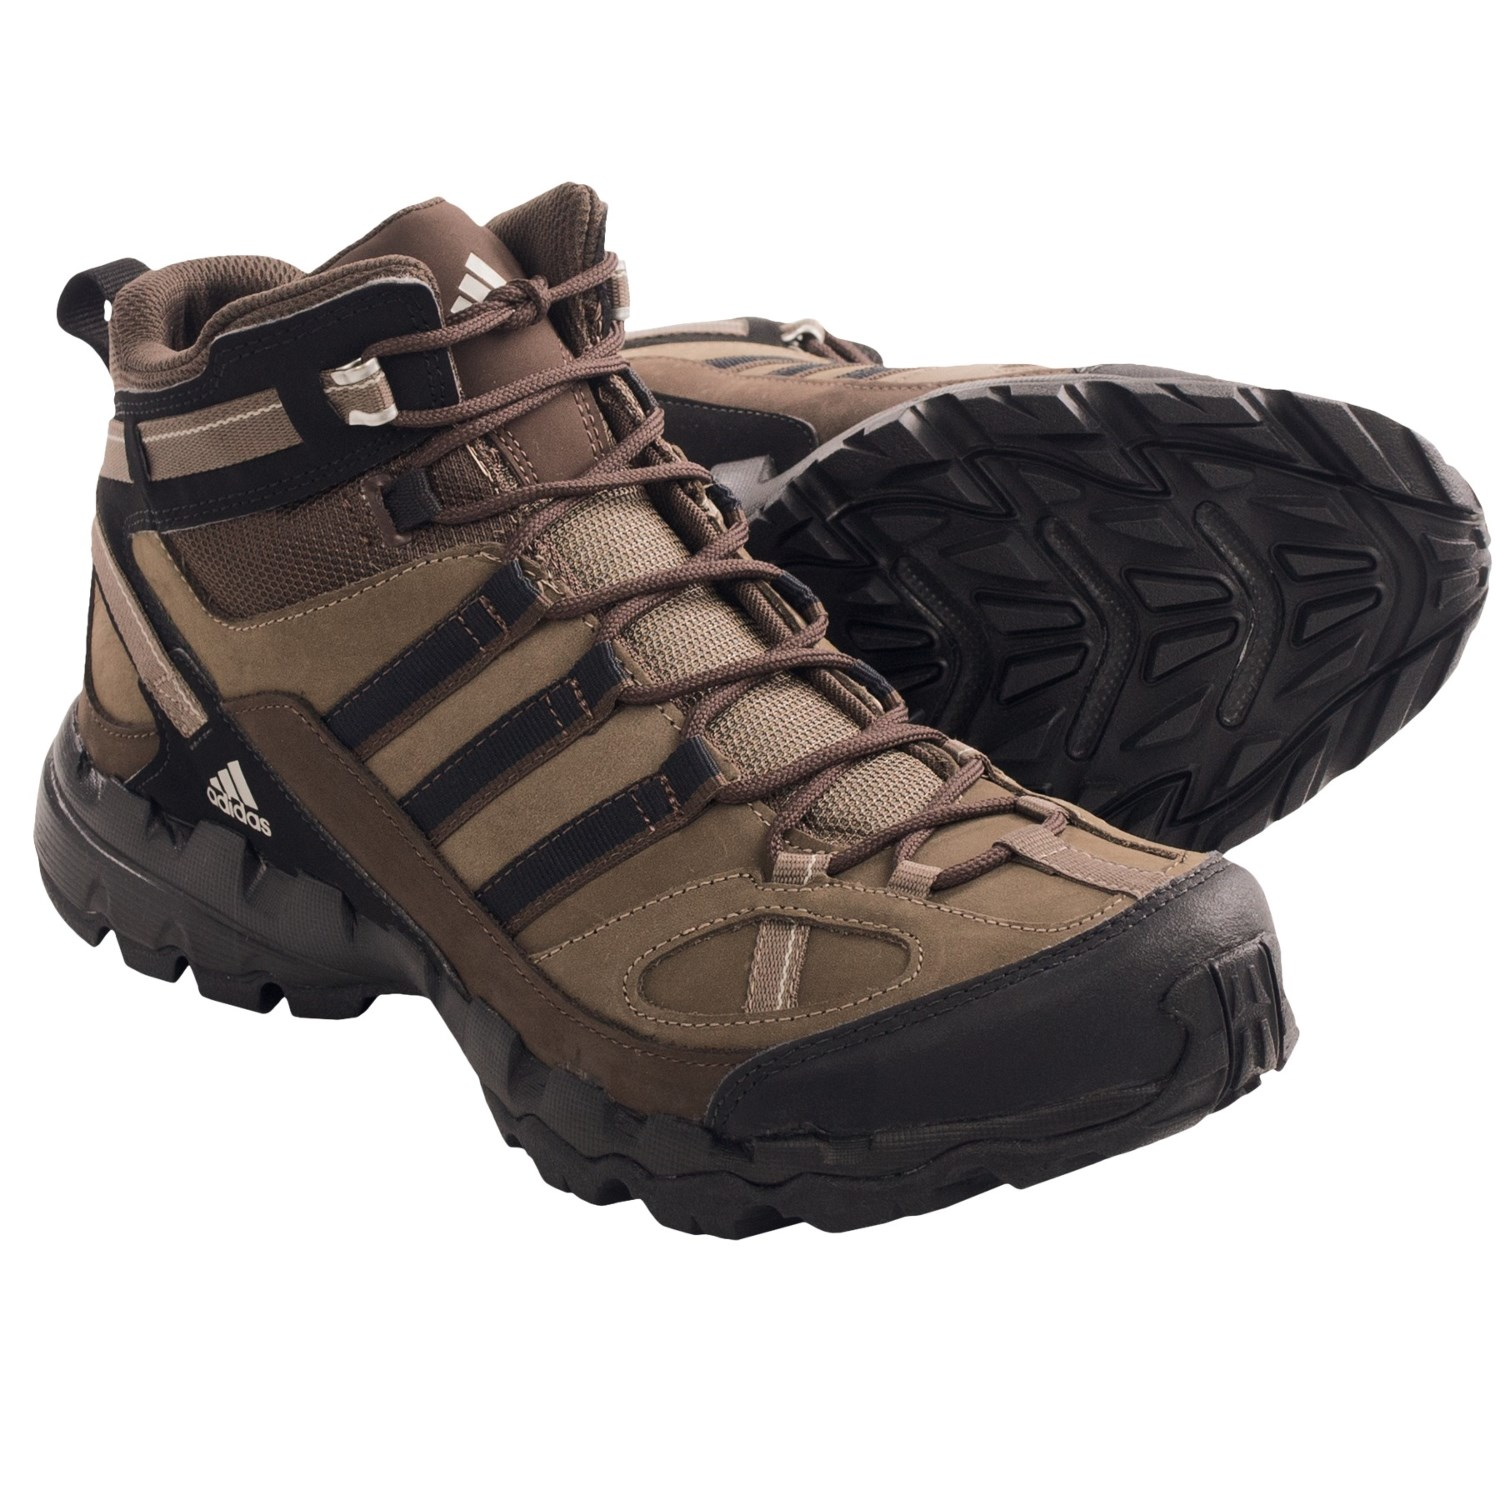 Keen Hiking Shoes Men Images Decorating Ideas Rack Of